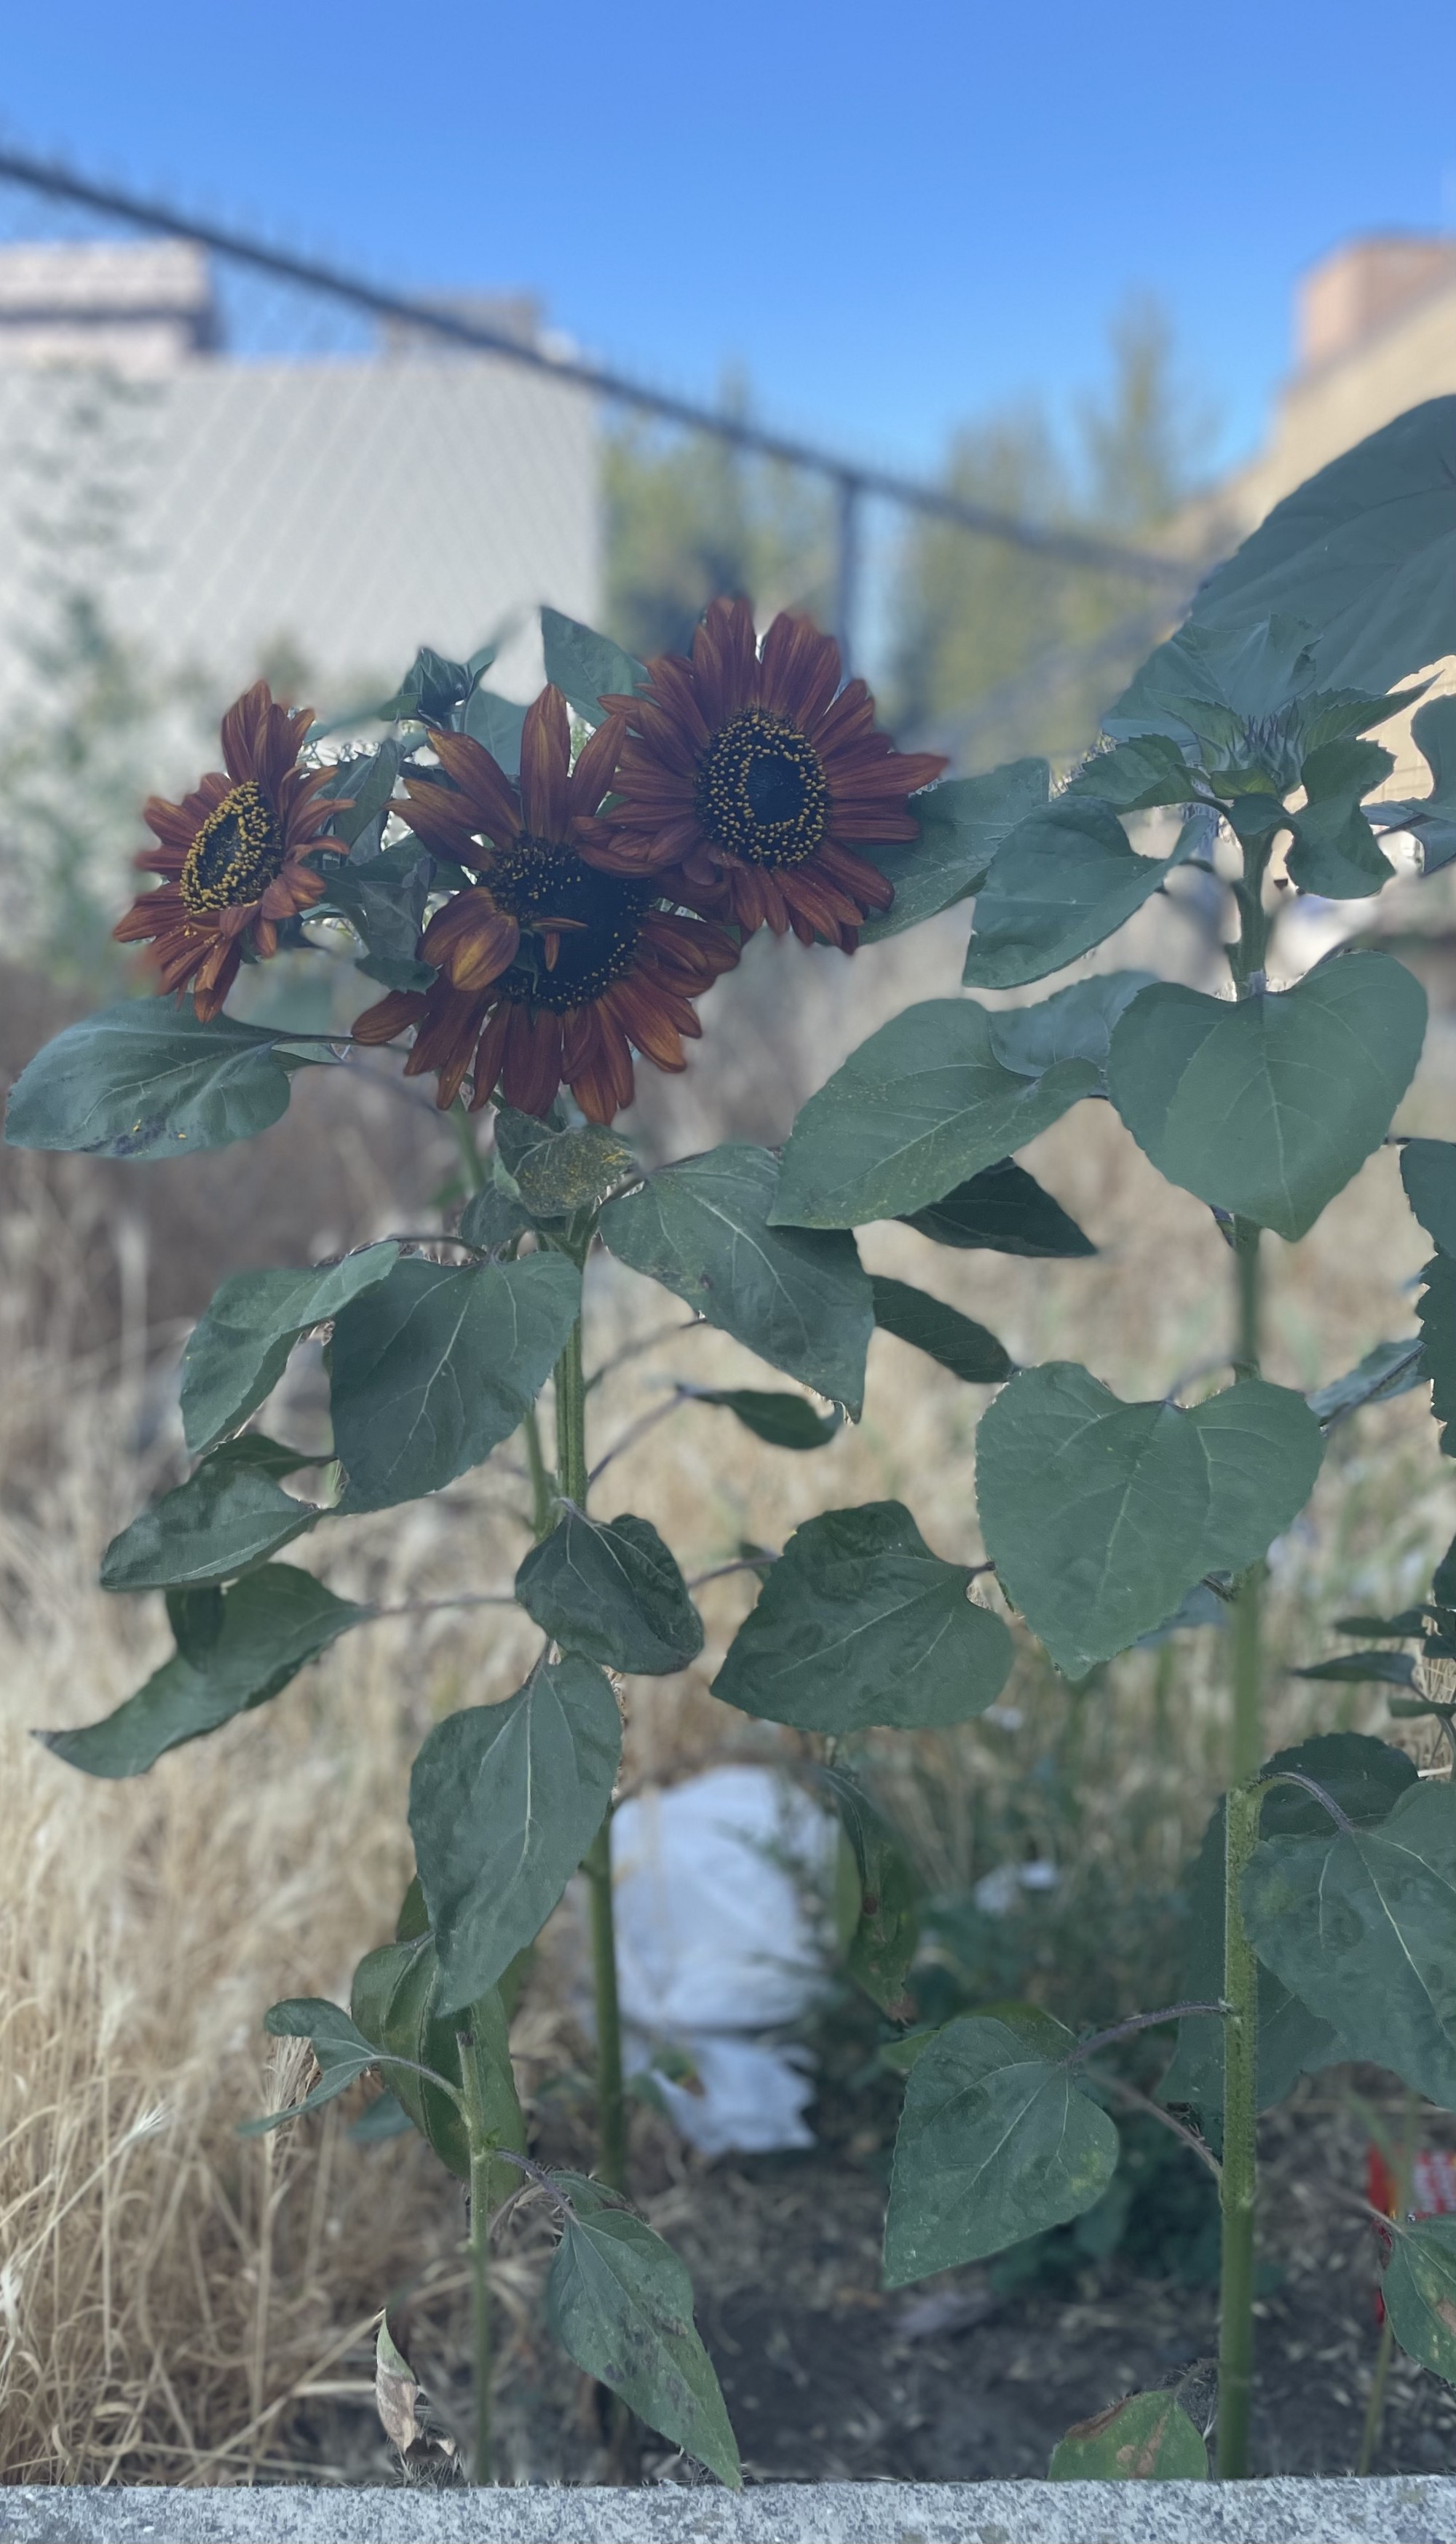 Sunflowers growing out of streetcorner